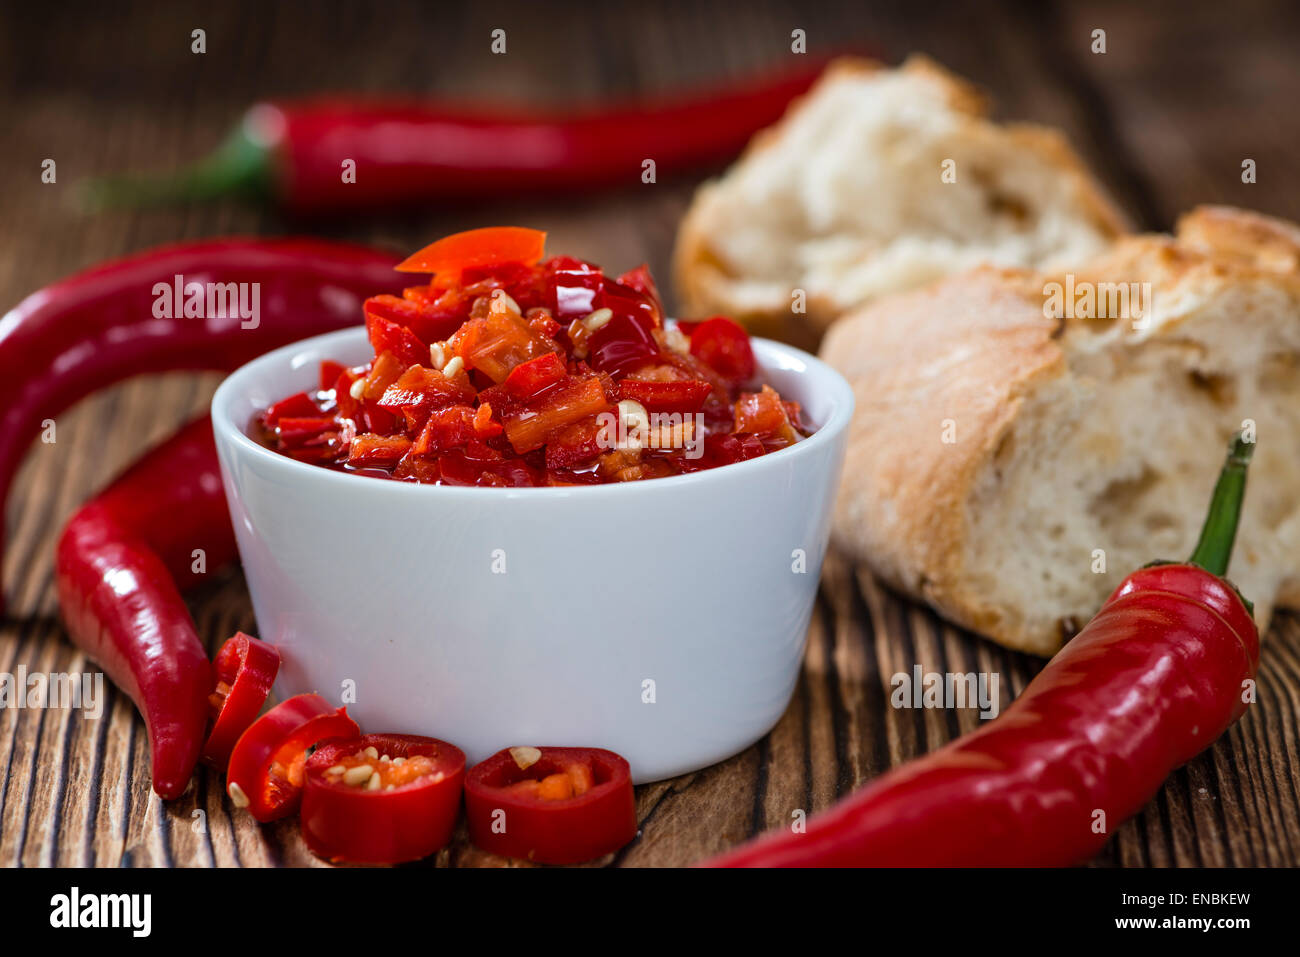 Preserved red Chilis (close-up shot) on wooden background - Stock Image